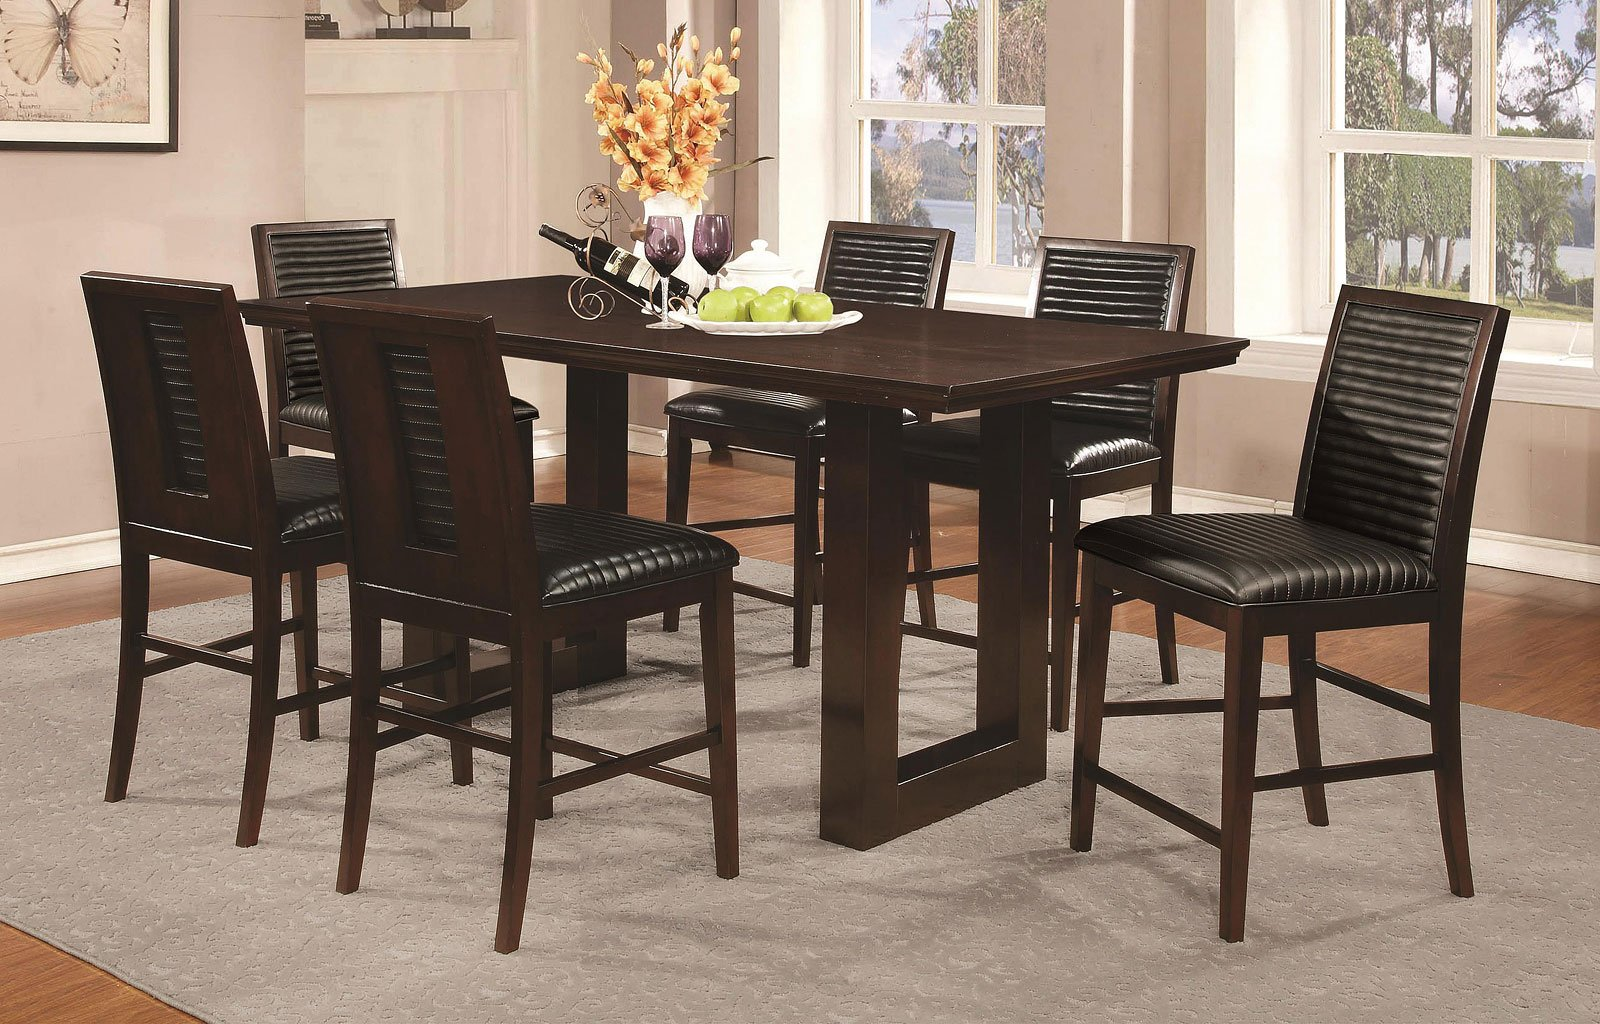 Chester counter height dining room set casual dining sets dining room and kitchen furniture - Casual kitchen sets ...